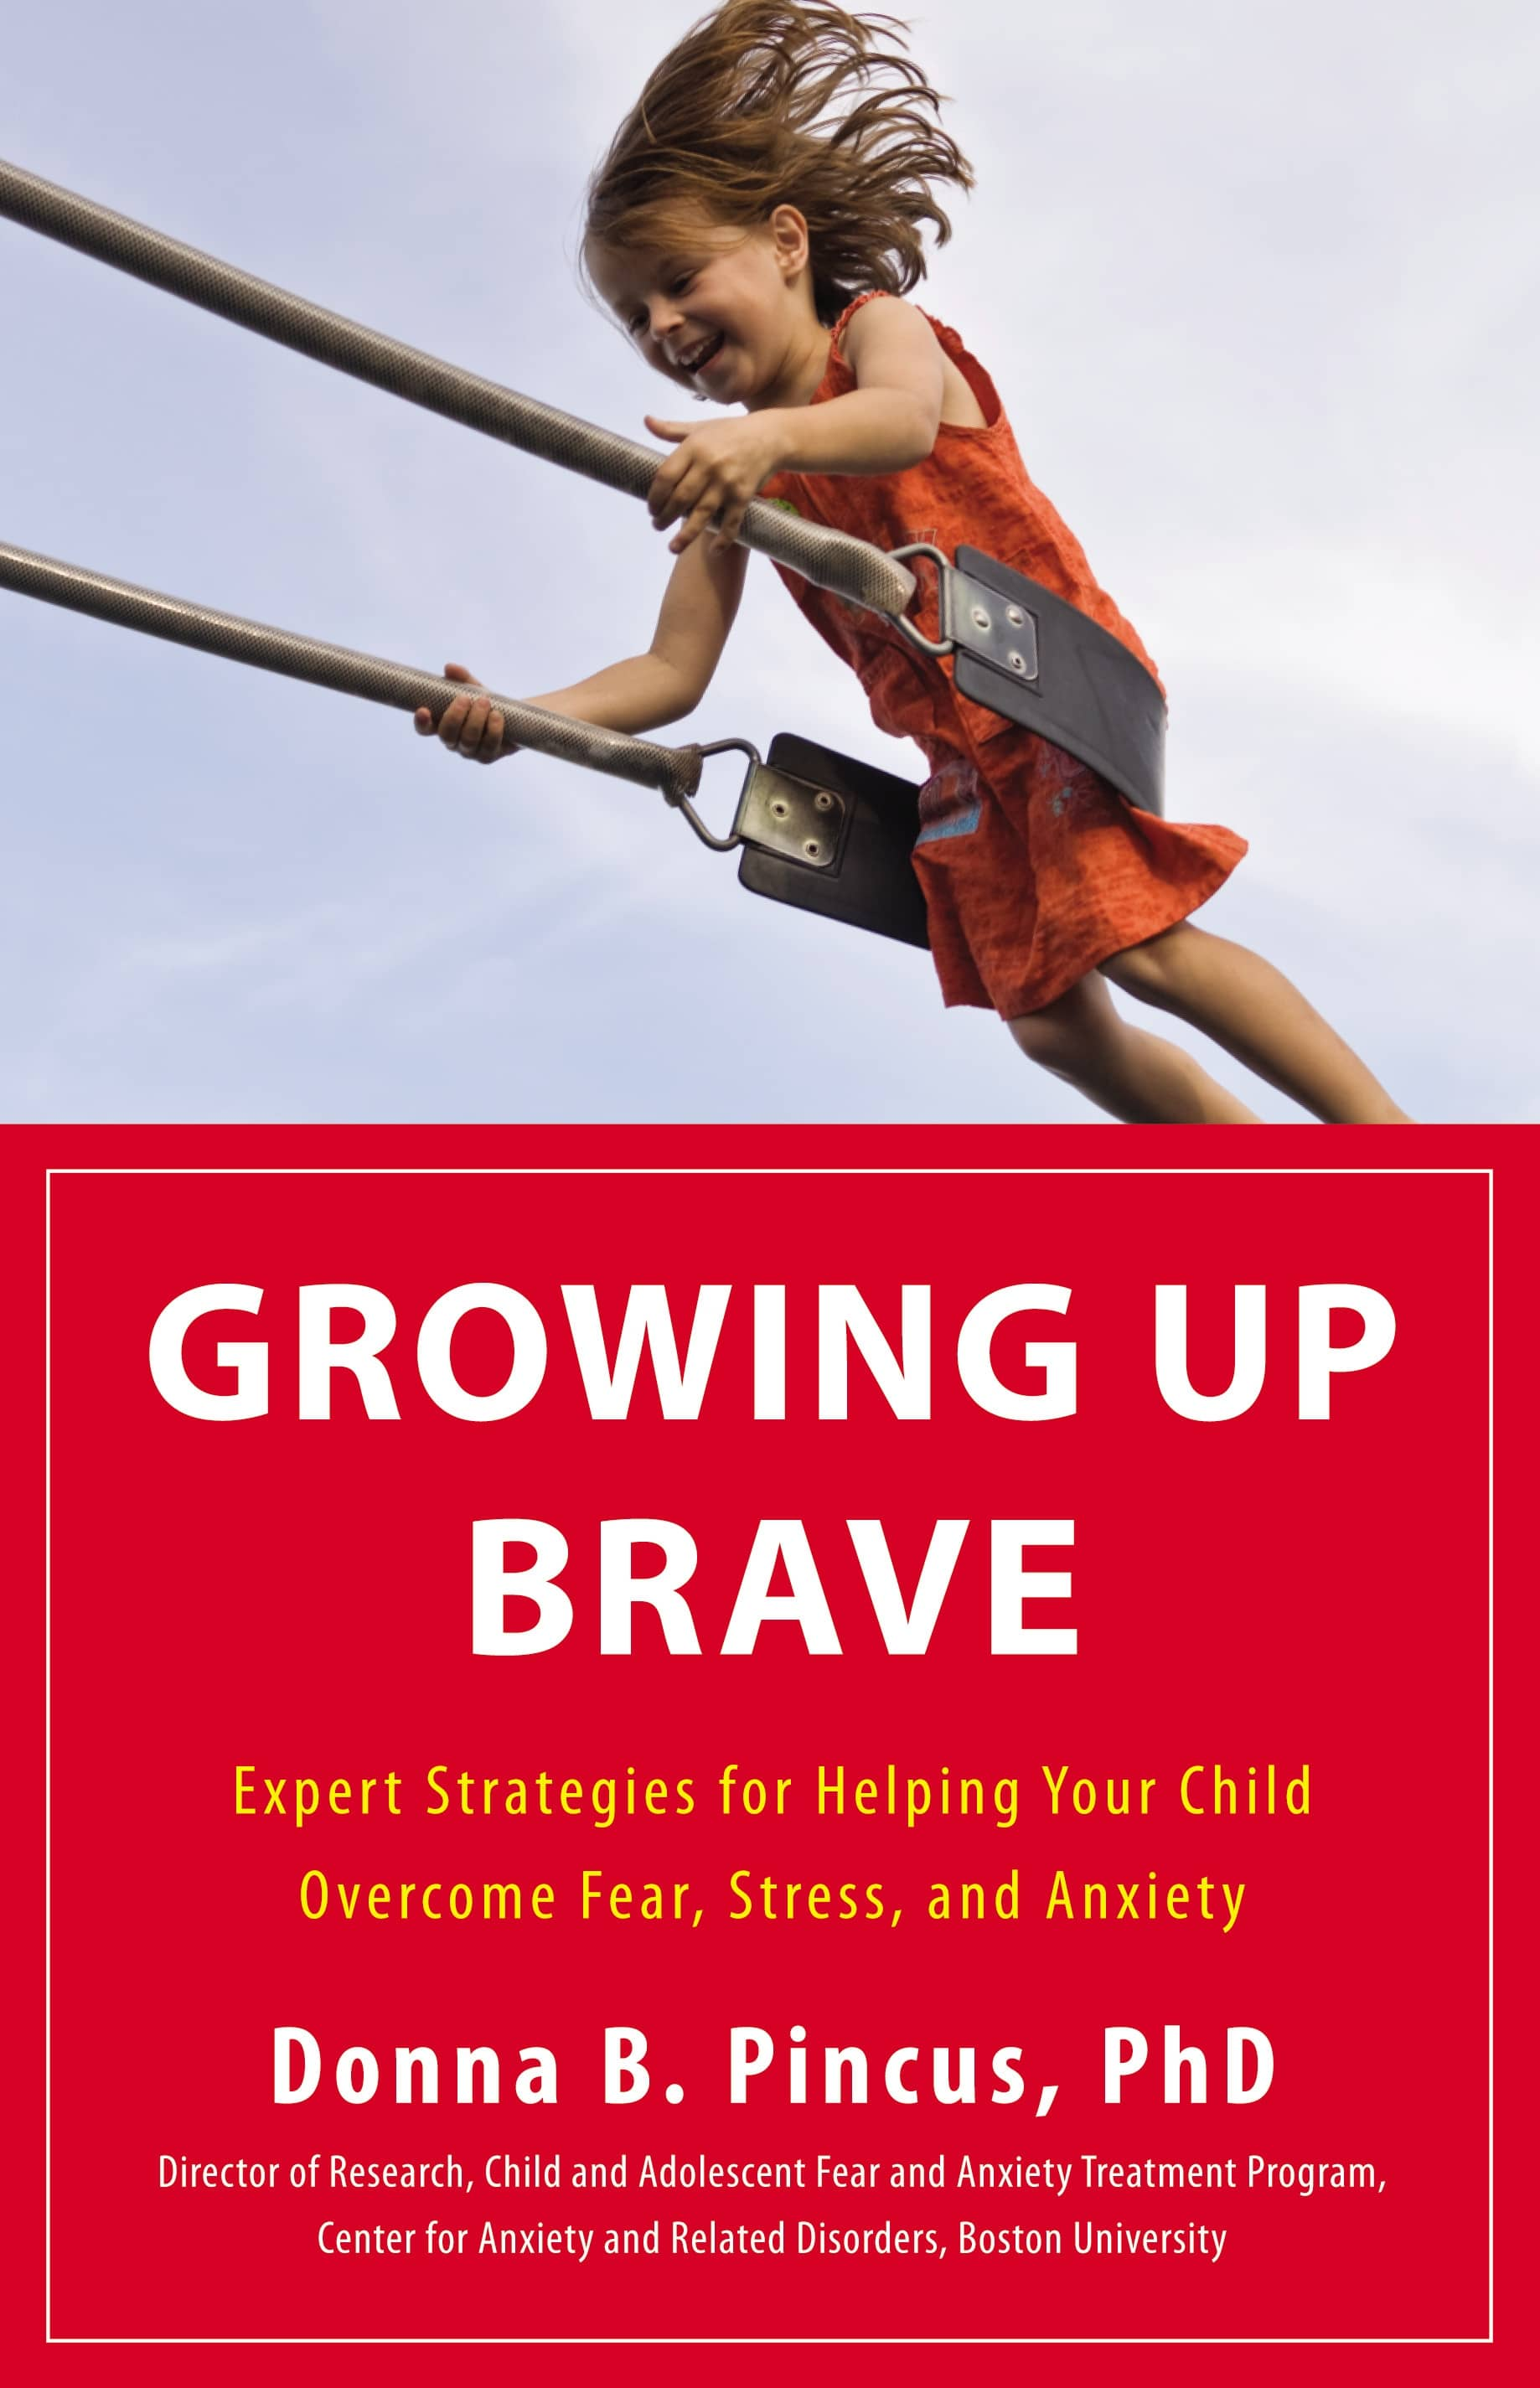 Growing Up Brave Book Cover